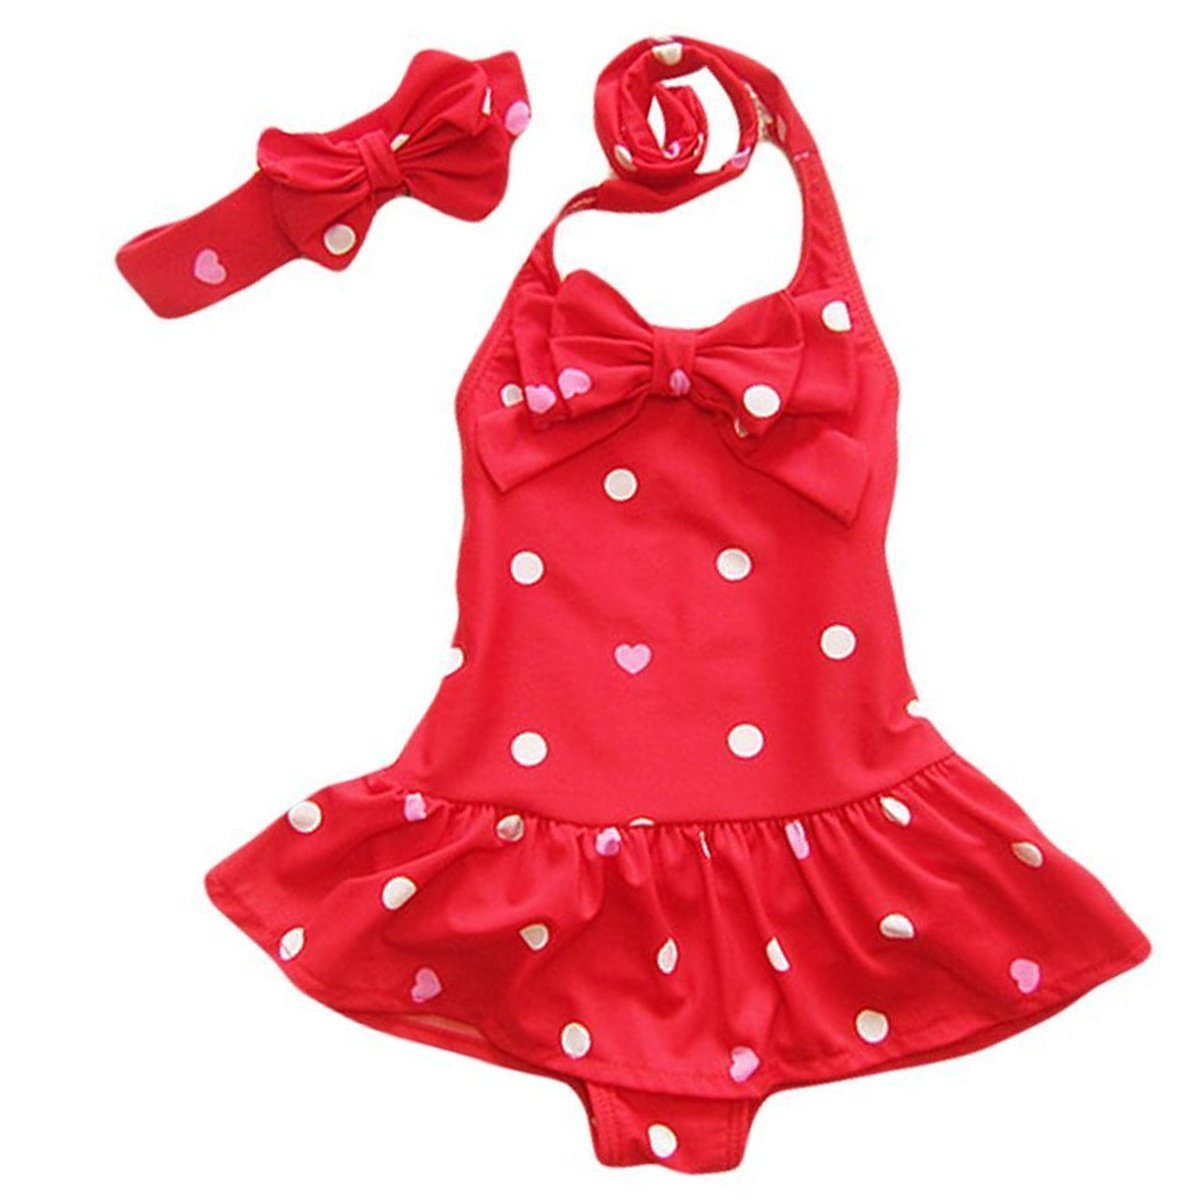 Jastore Baby Girls Swimwear One Piece Swimsuits Beach Wear with Headband